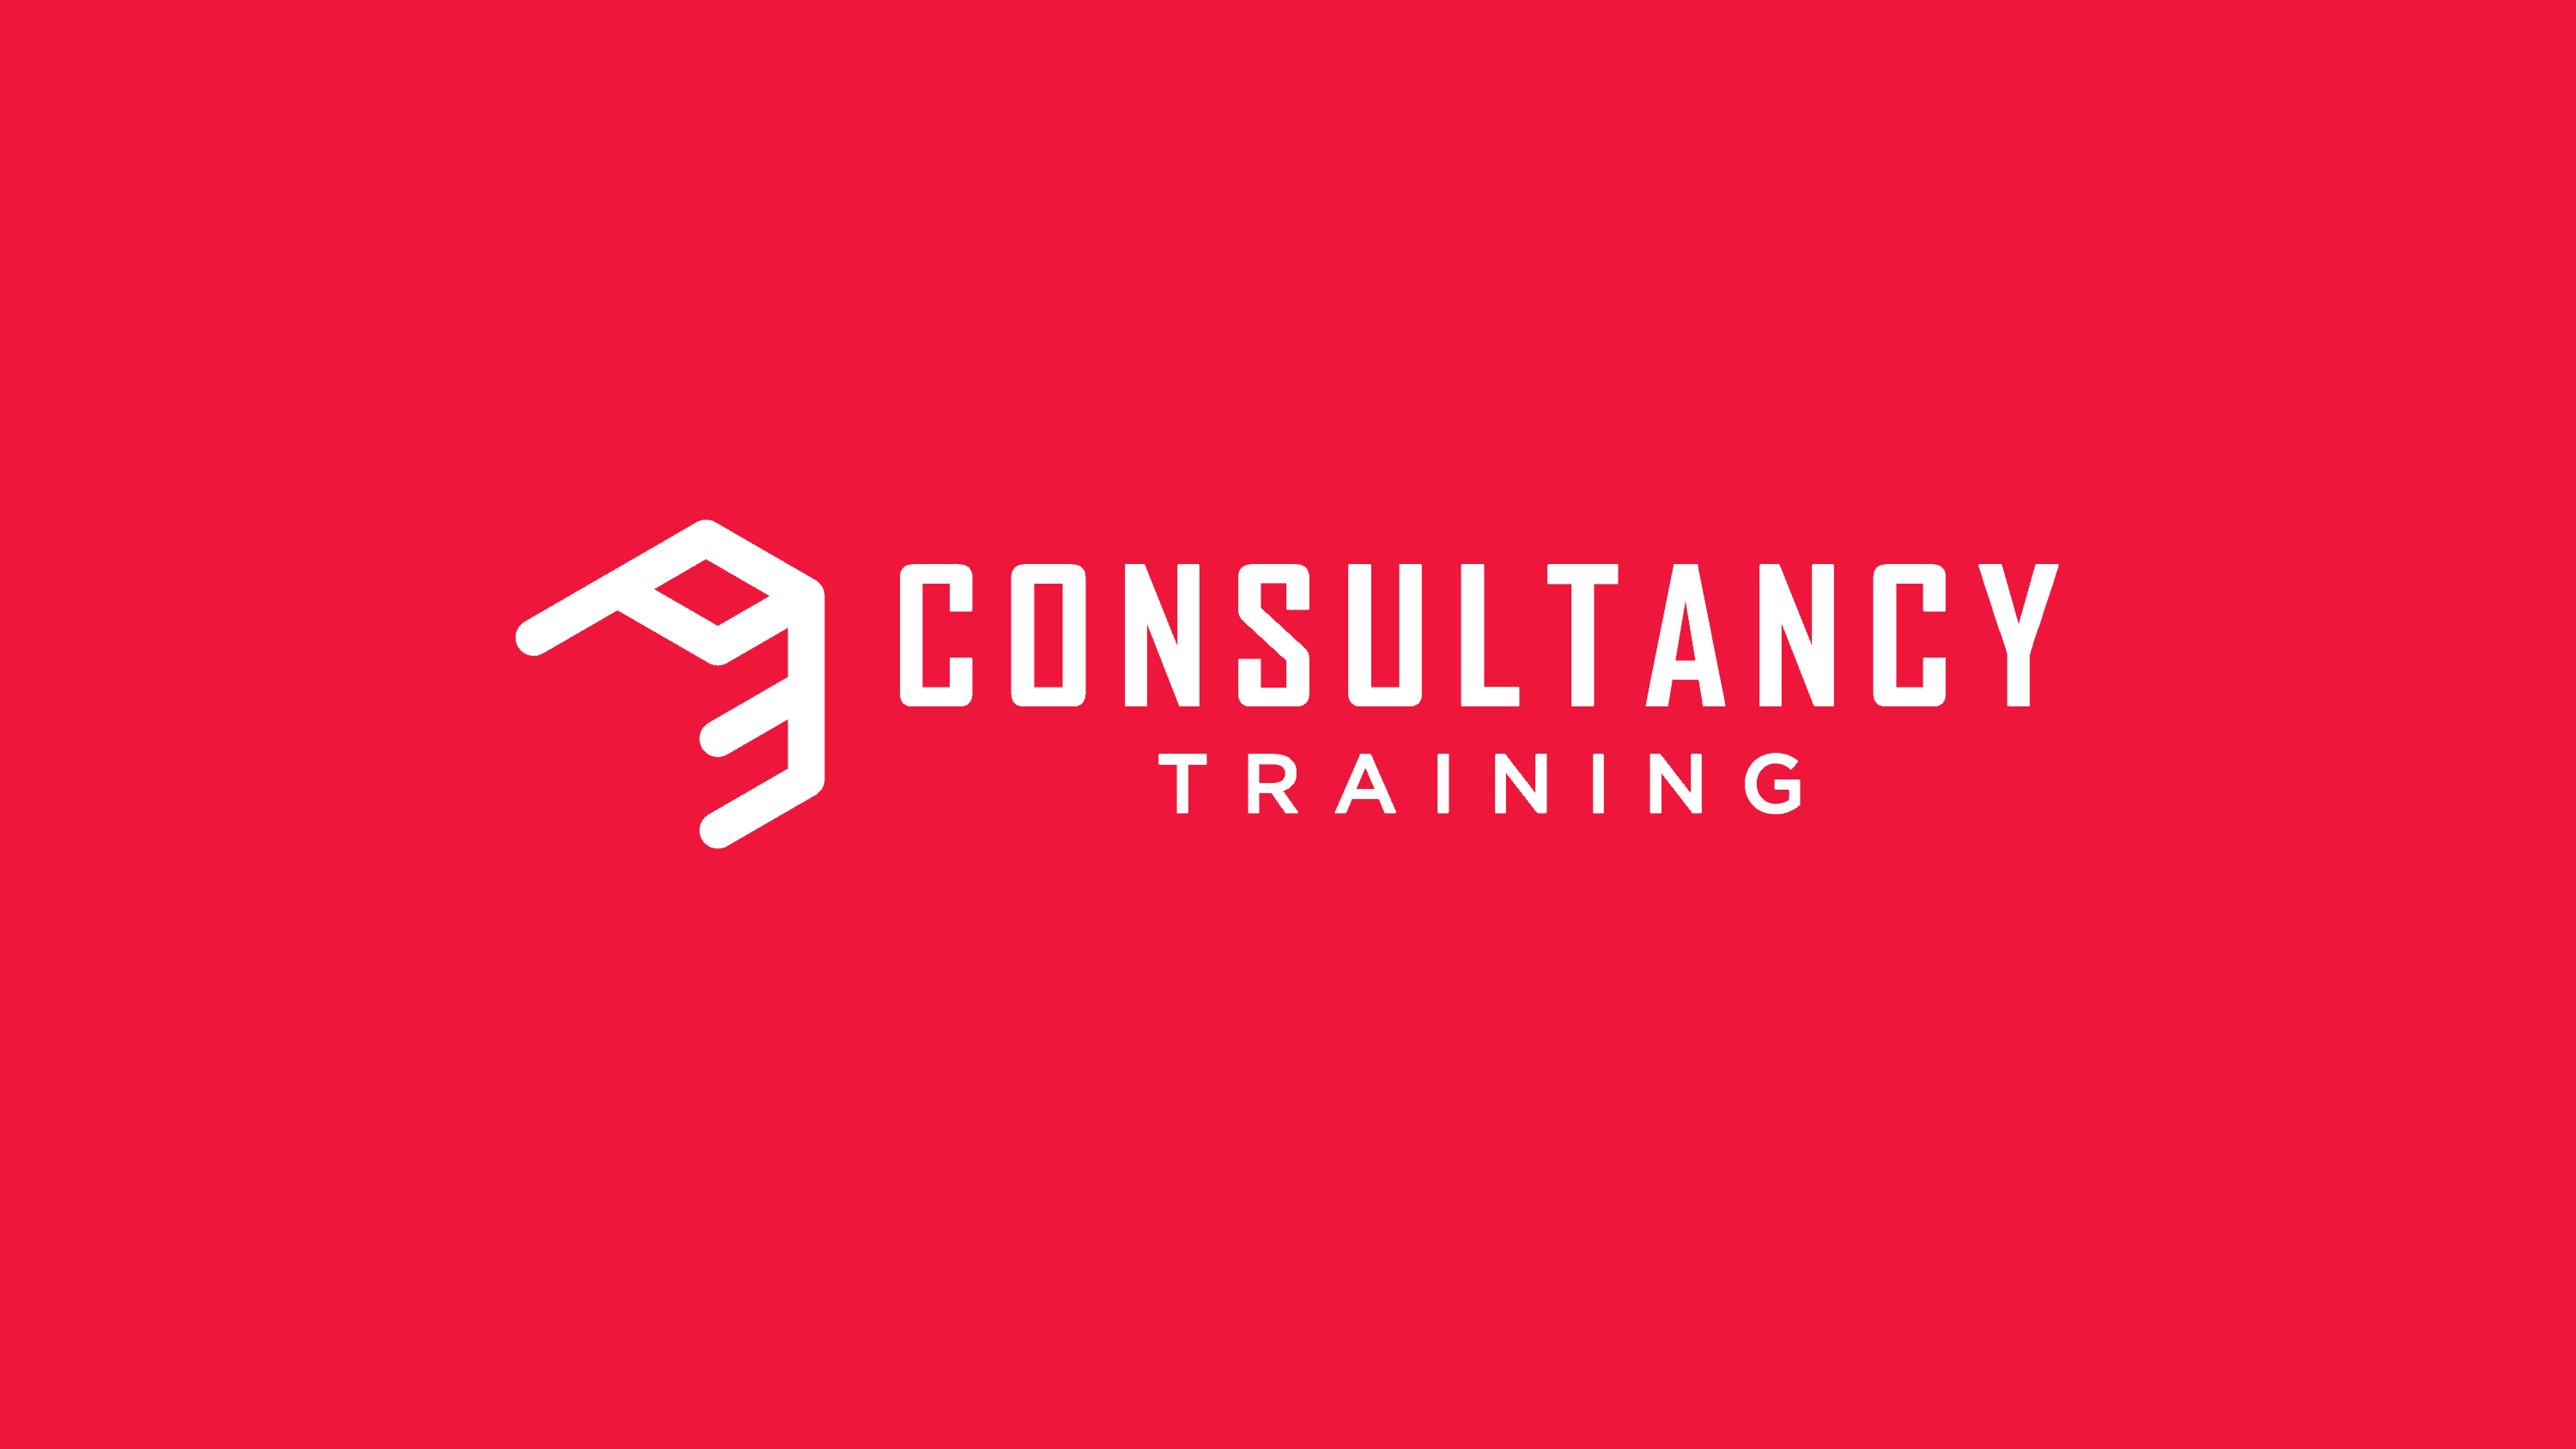 Proximo 3 Consultancy Learning Image